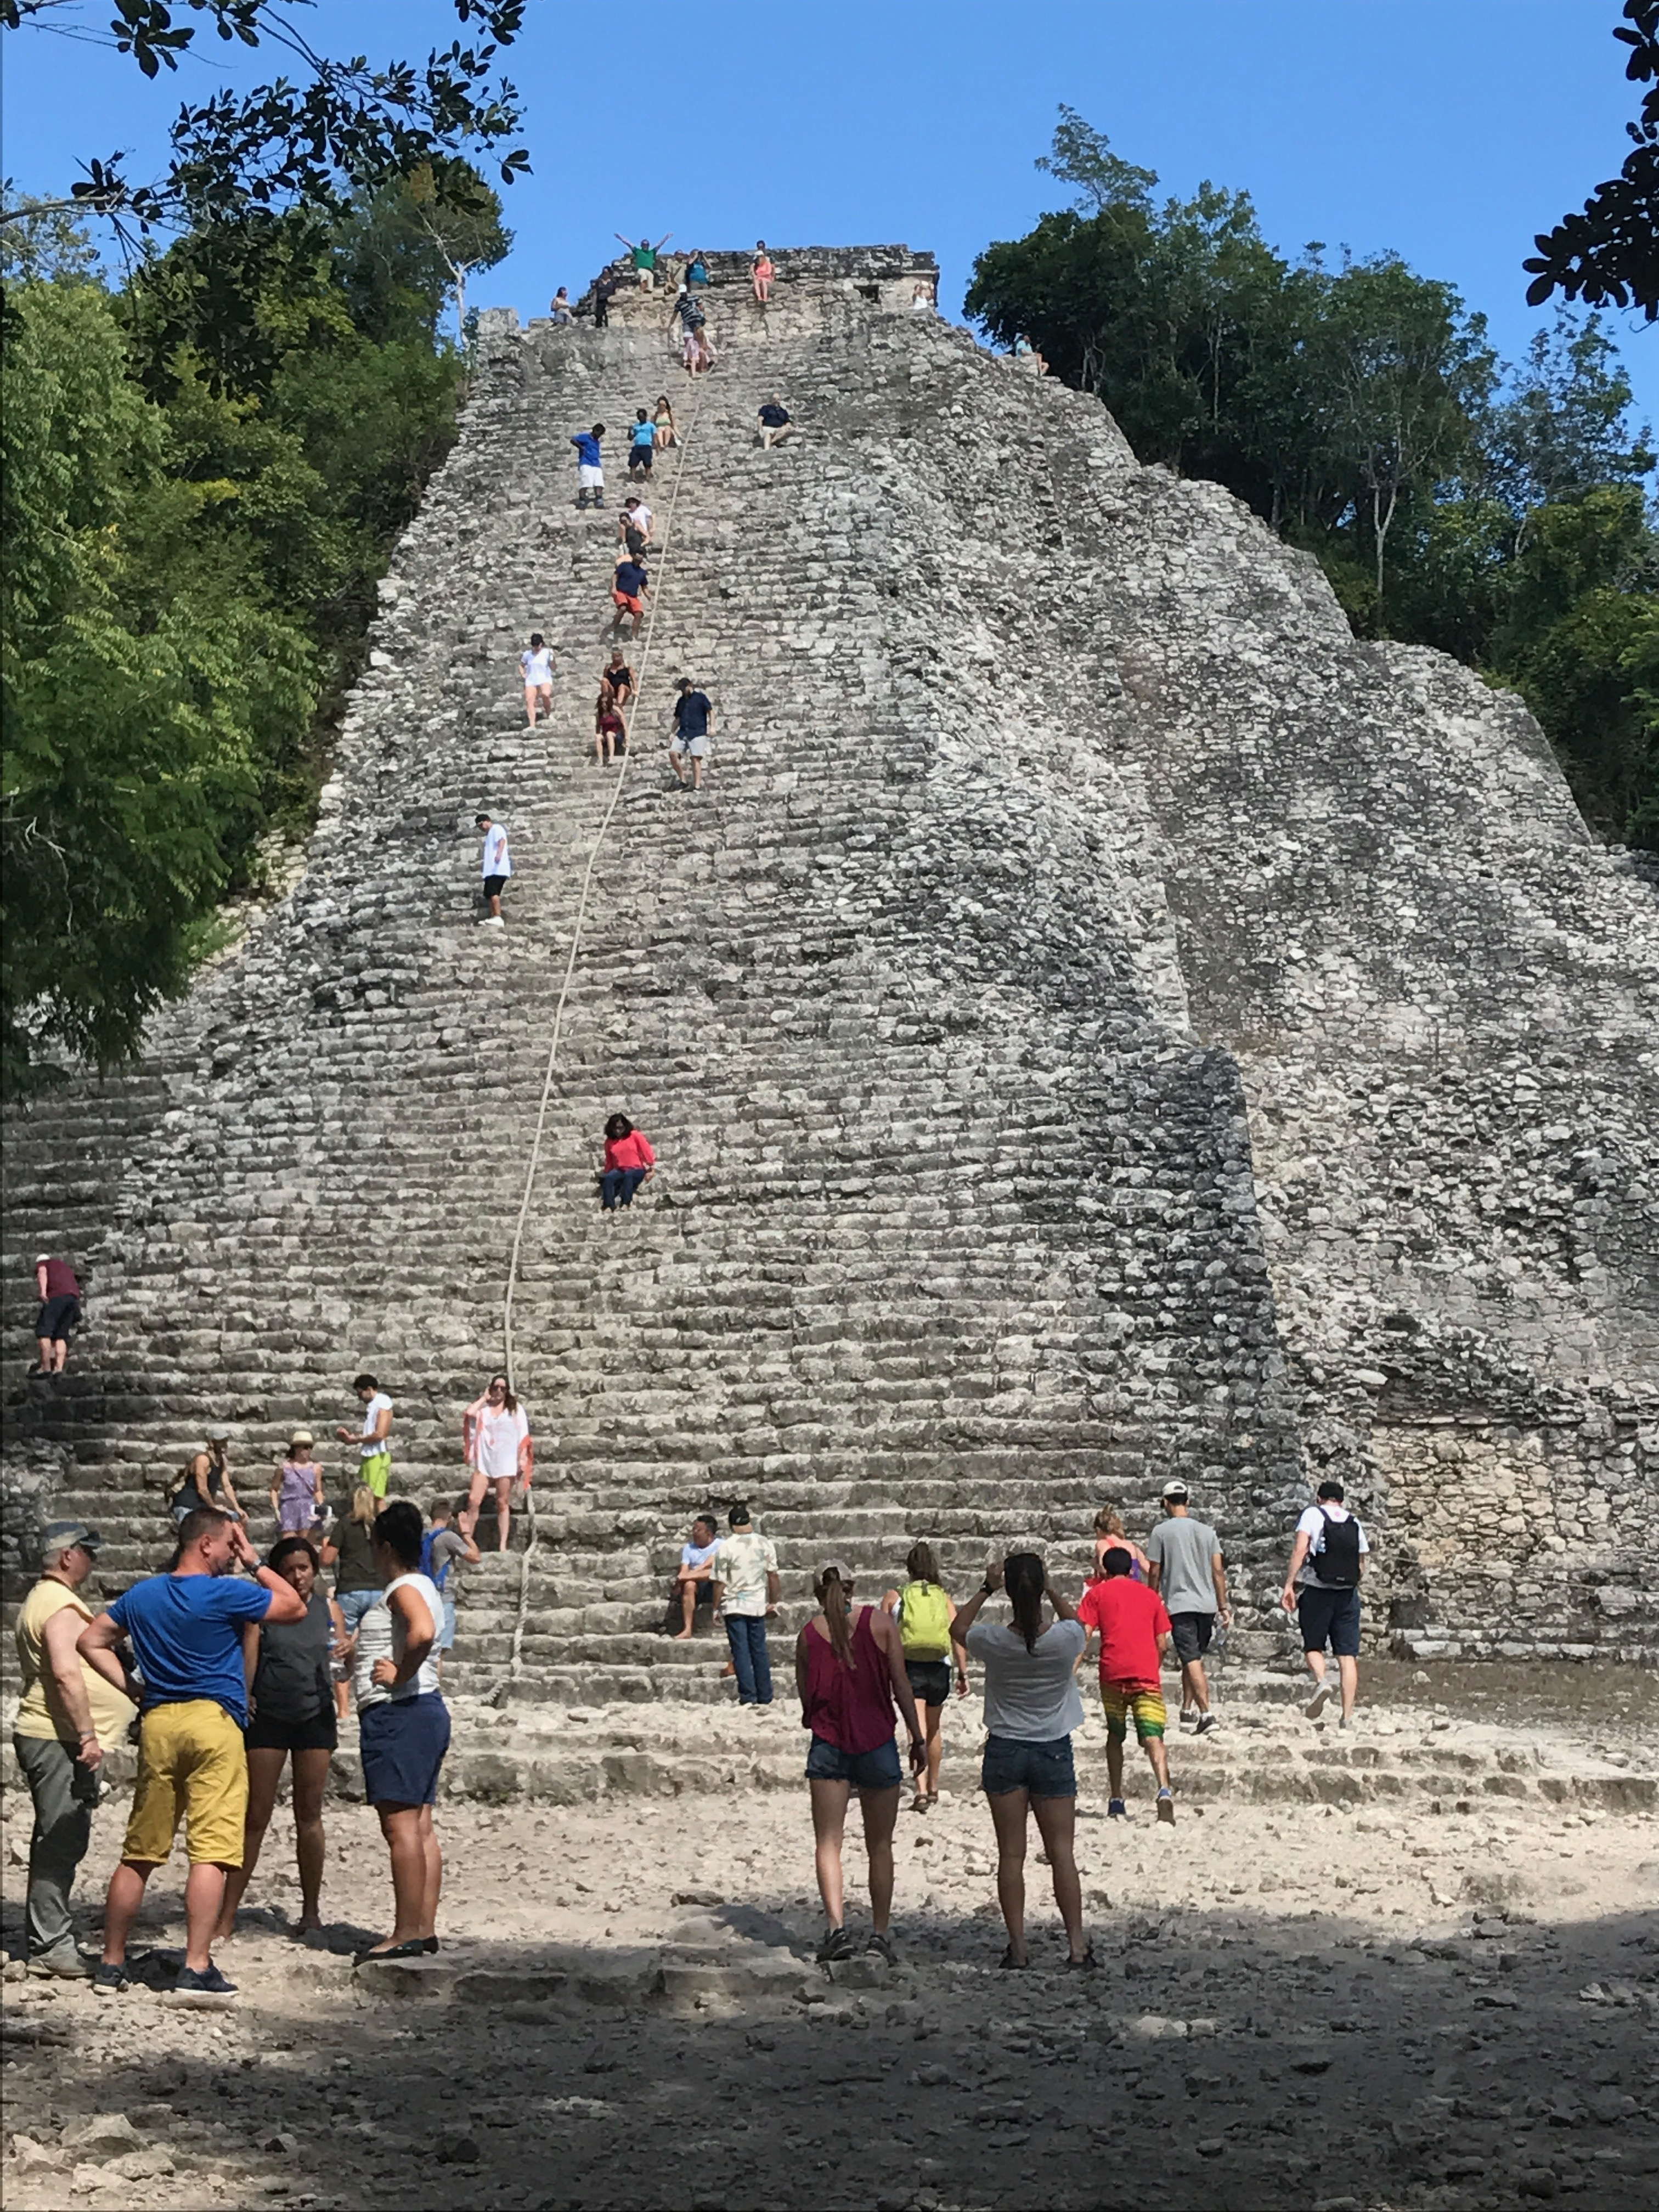 Exploring the Ancient Mayan Ruins of Coba